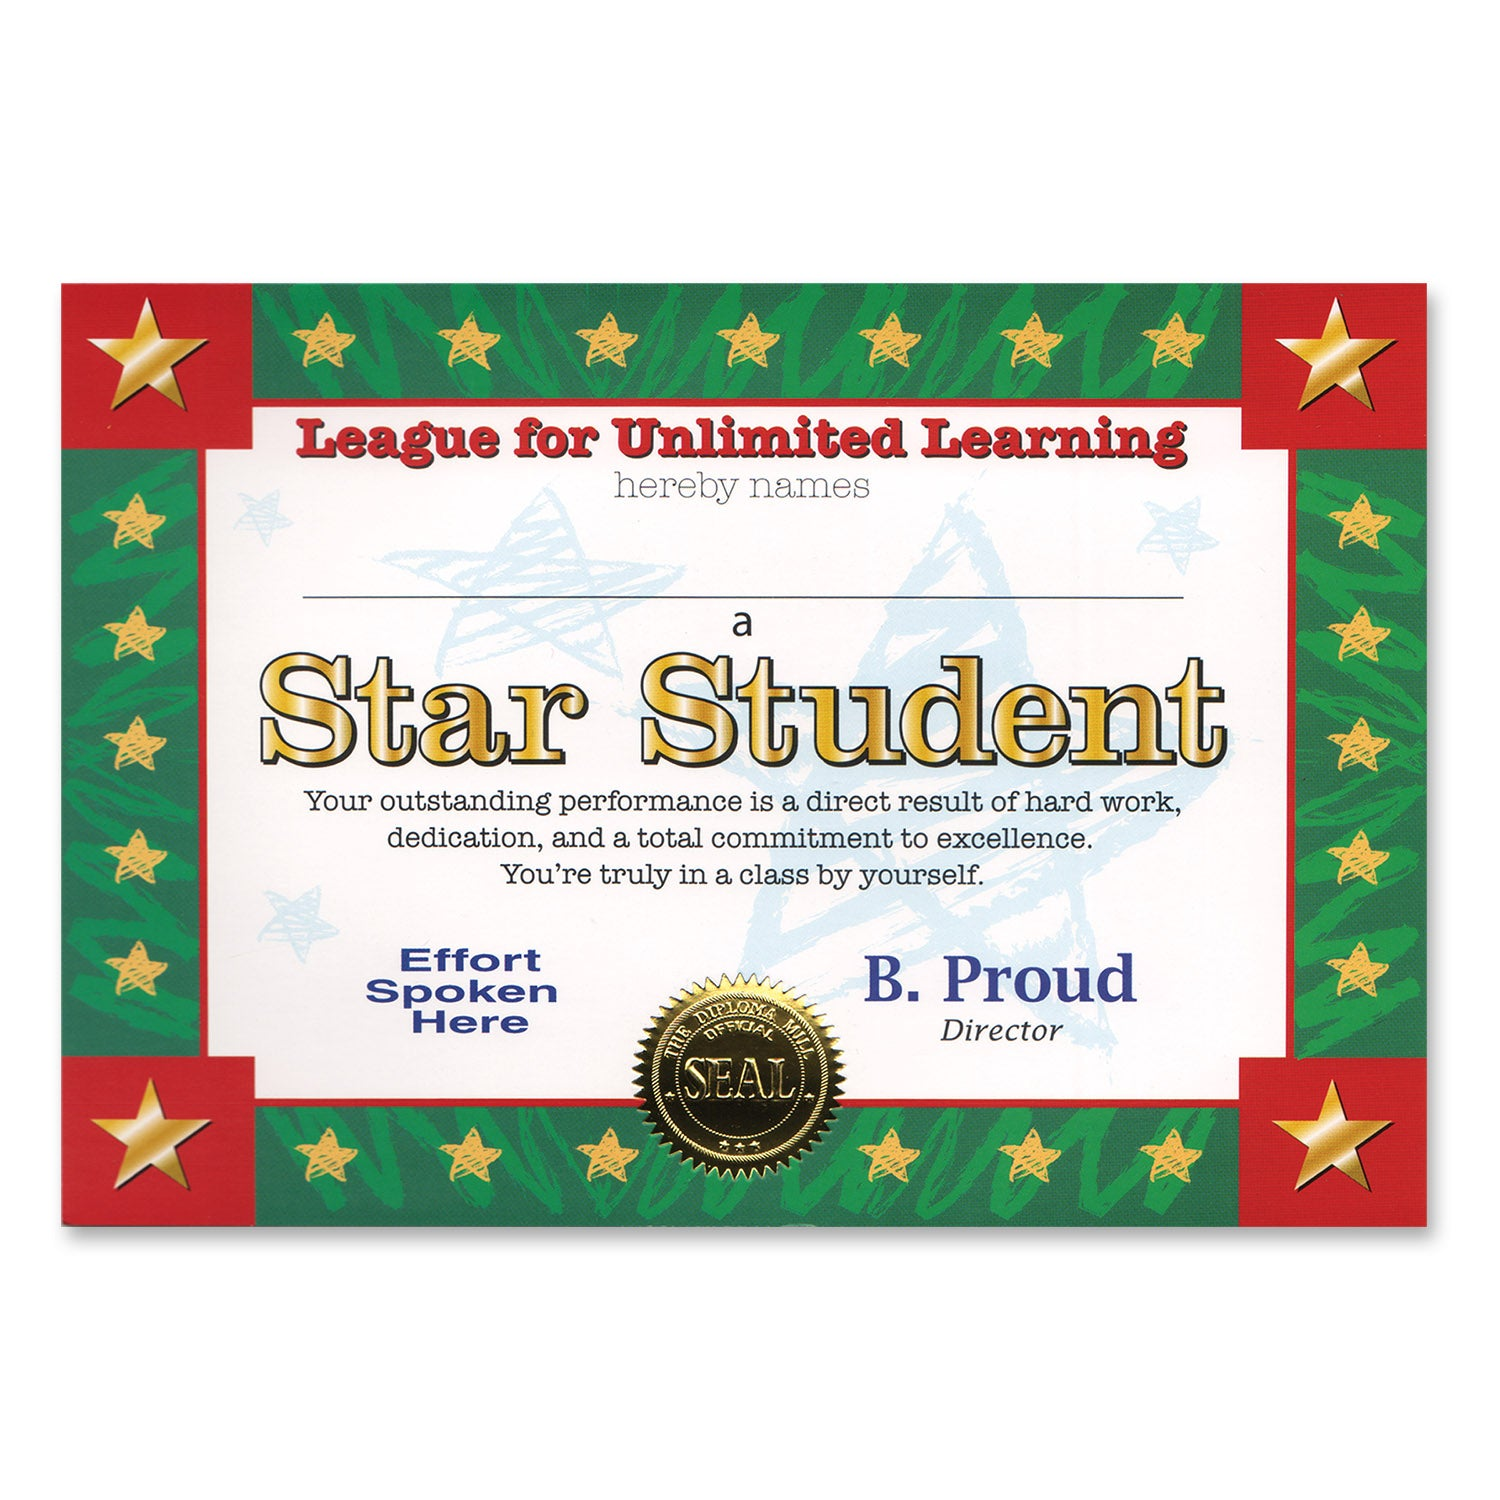 Star Student Certificate by Beistle - School Awards and Supplies Decorations